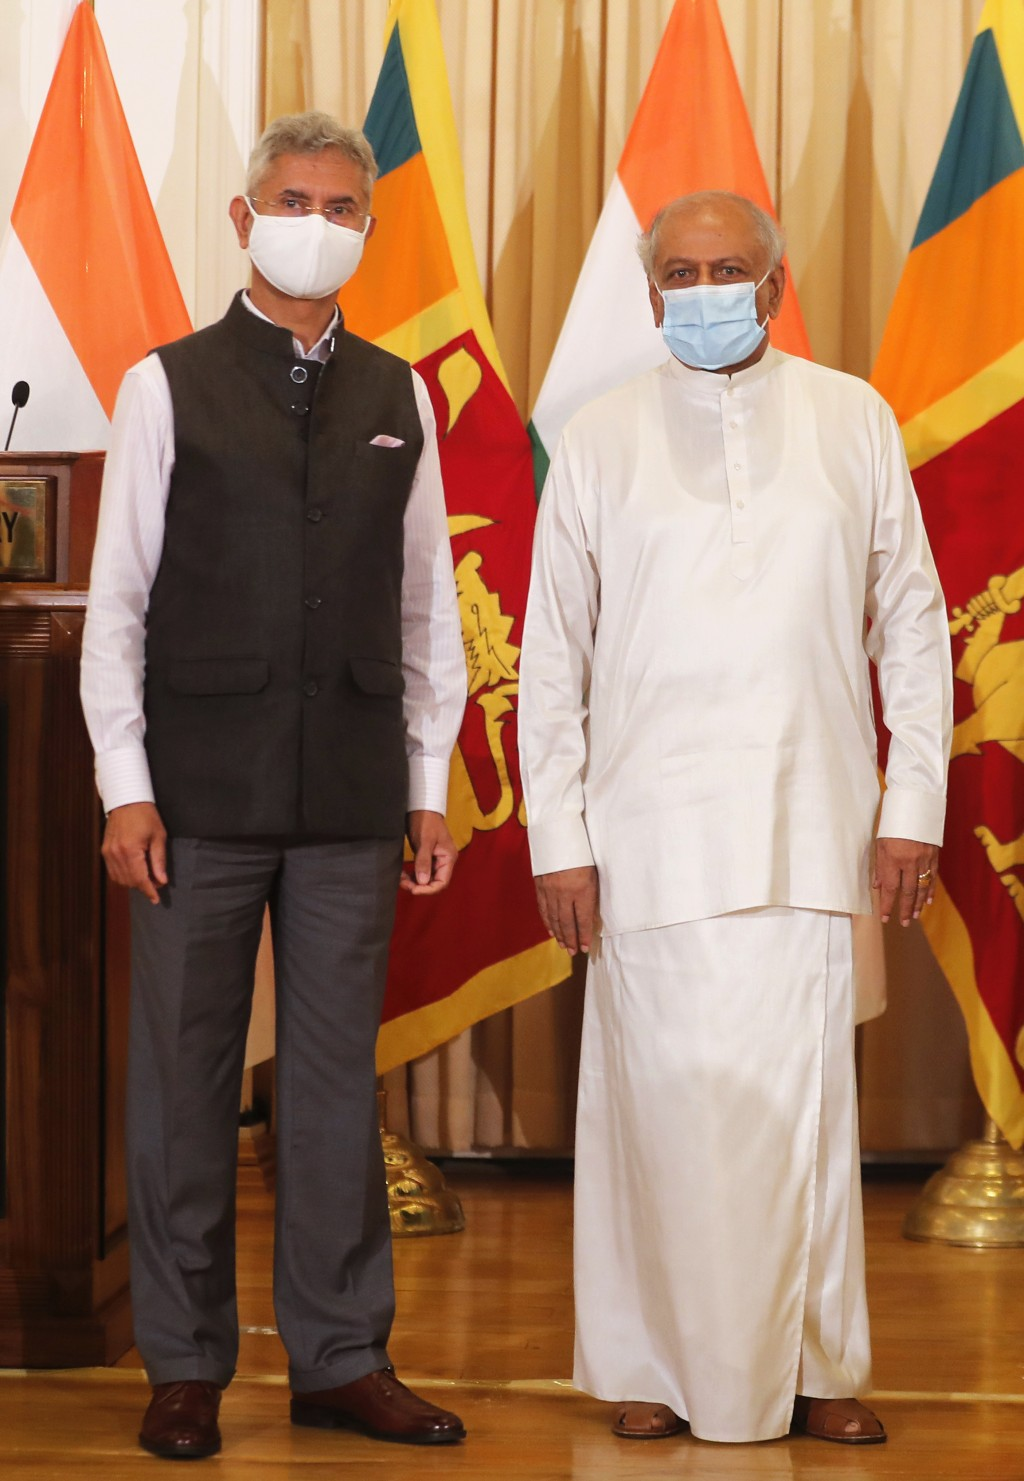 Sri Lankan Foreign Minister Dinesh Gunawardena, right, stands for a photograph with his Indian counterpart Subrahmanyam Jaishankar after addressing a ...